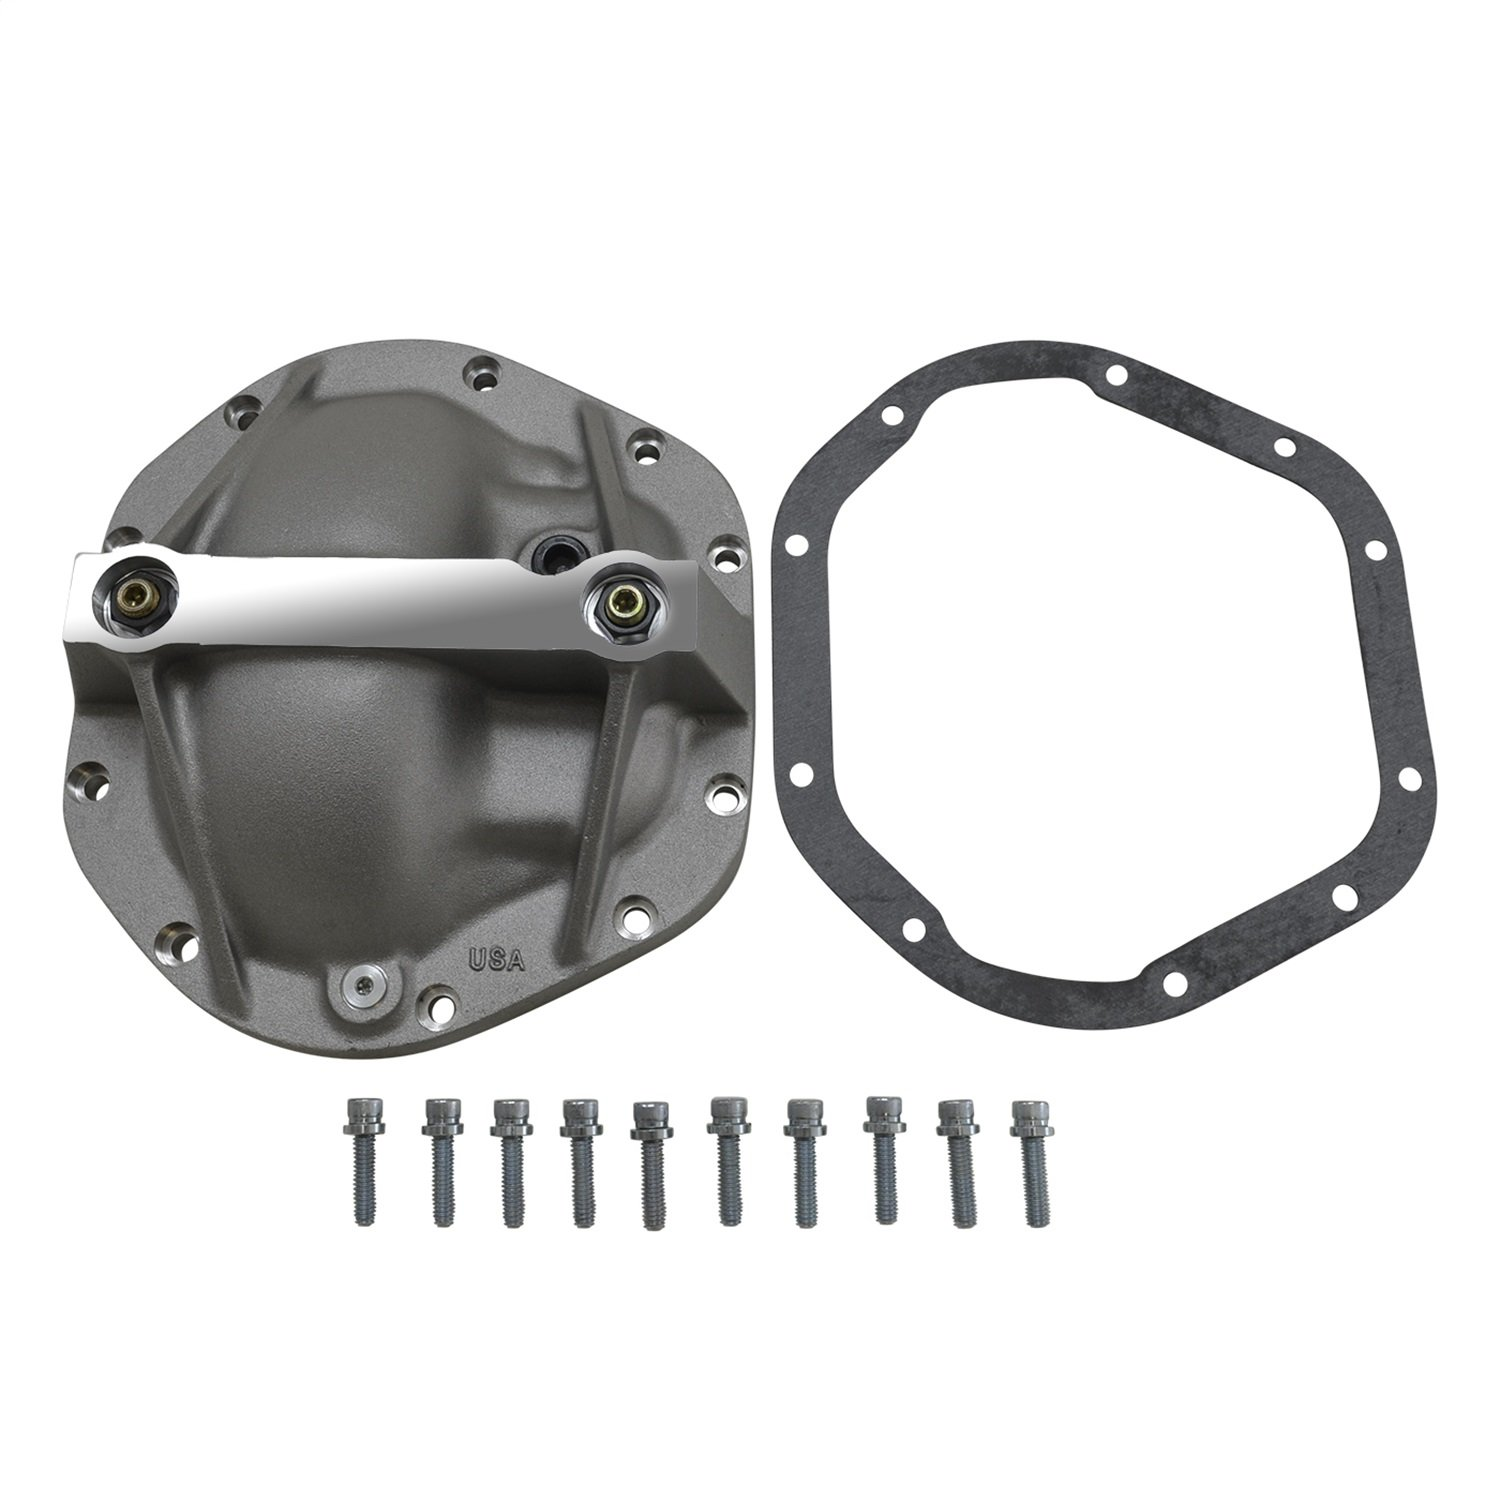 Yukon (YP C3-D44-STD) Aluminum Replacement Girdle Cover for Dana 44 TA HD Differential